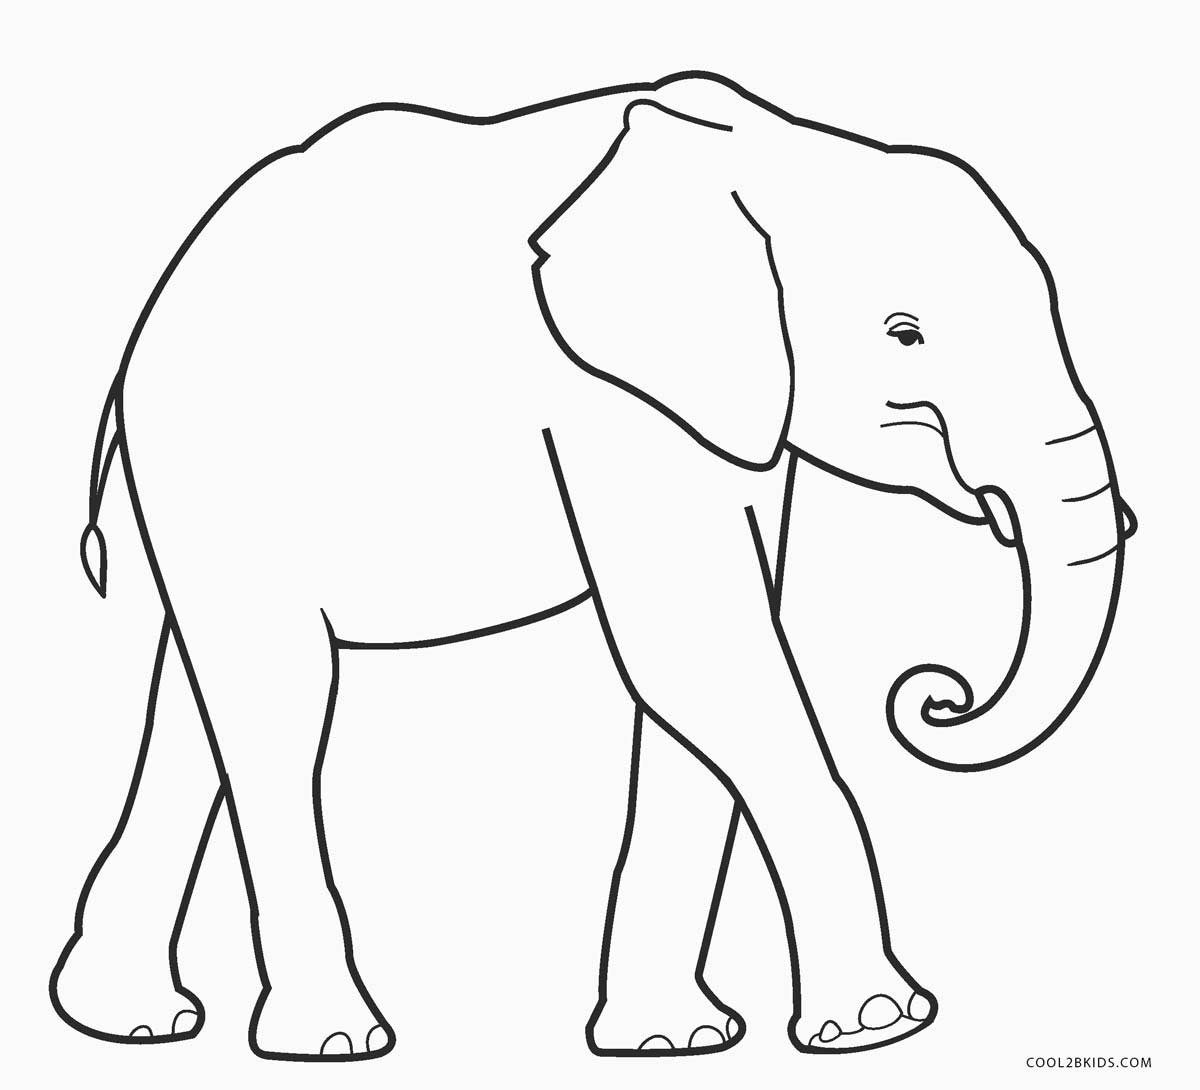 elephant coloring elephant coloring pages cartoon various ages k5 worksheets coloring elephant